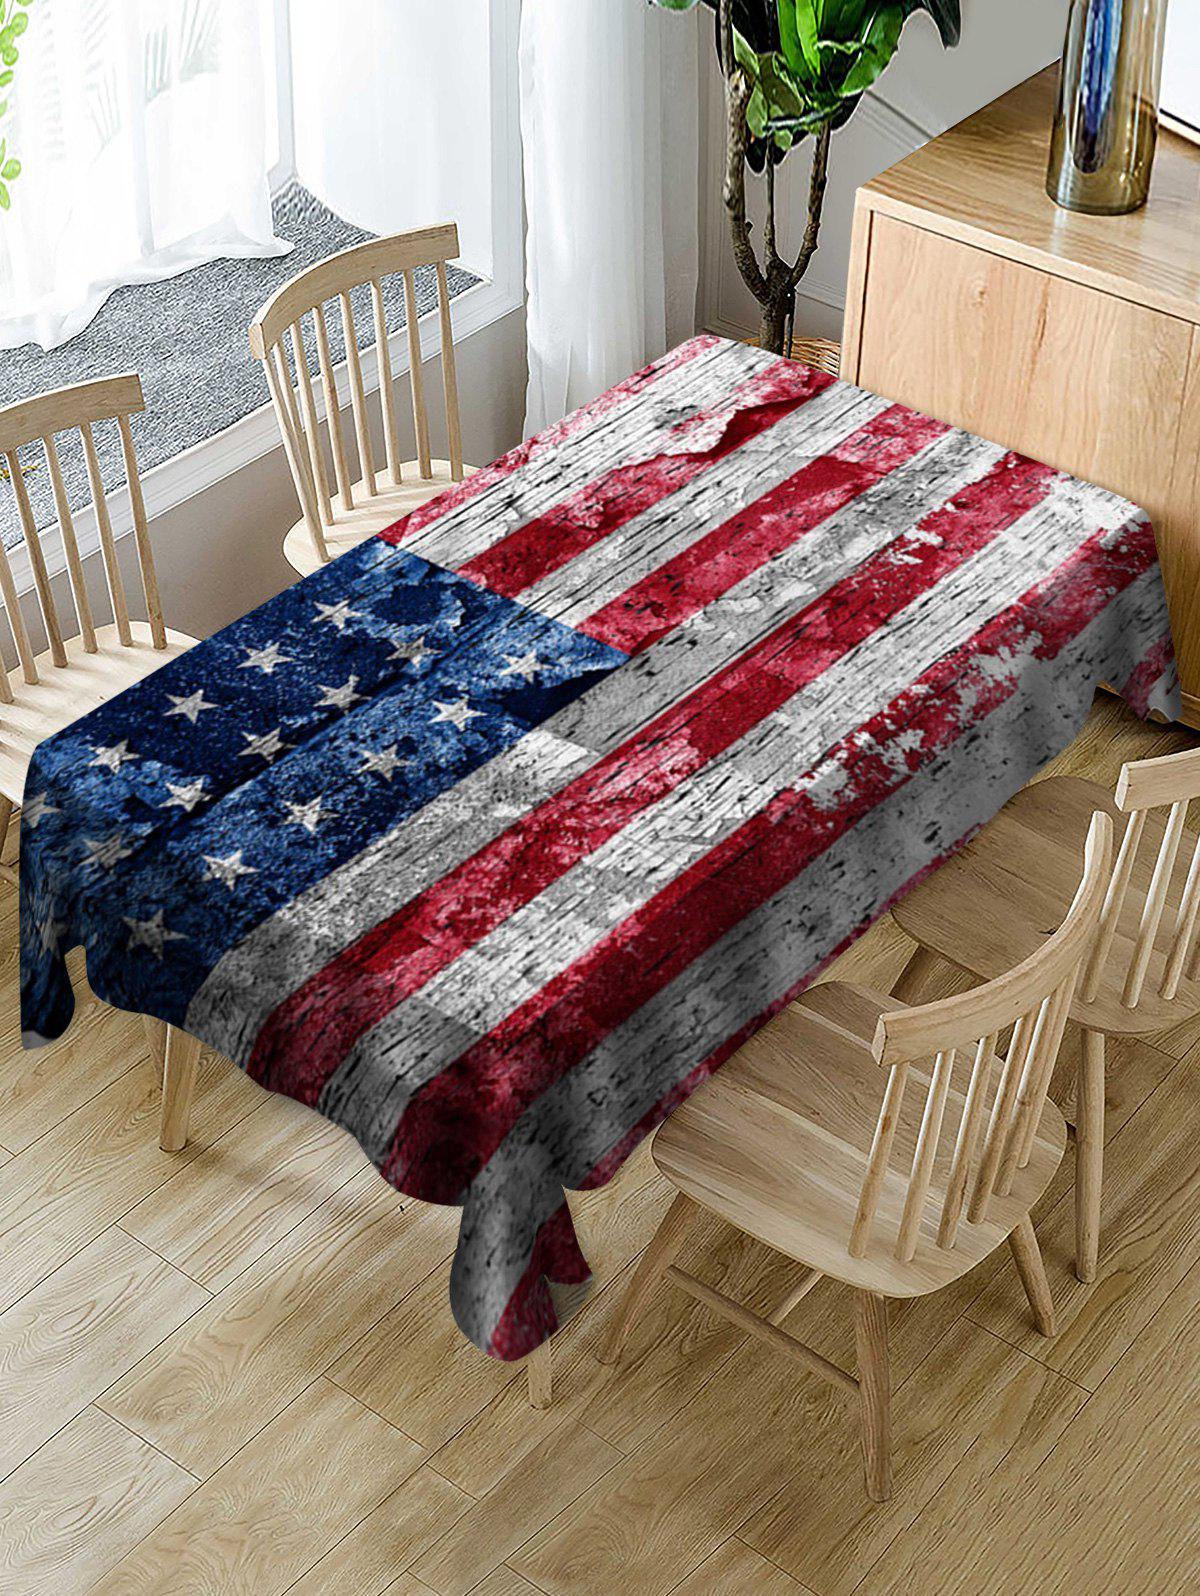 Latest Wood Grain American Flag Pattern Fabric Tablecloth